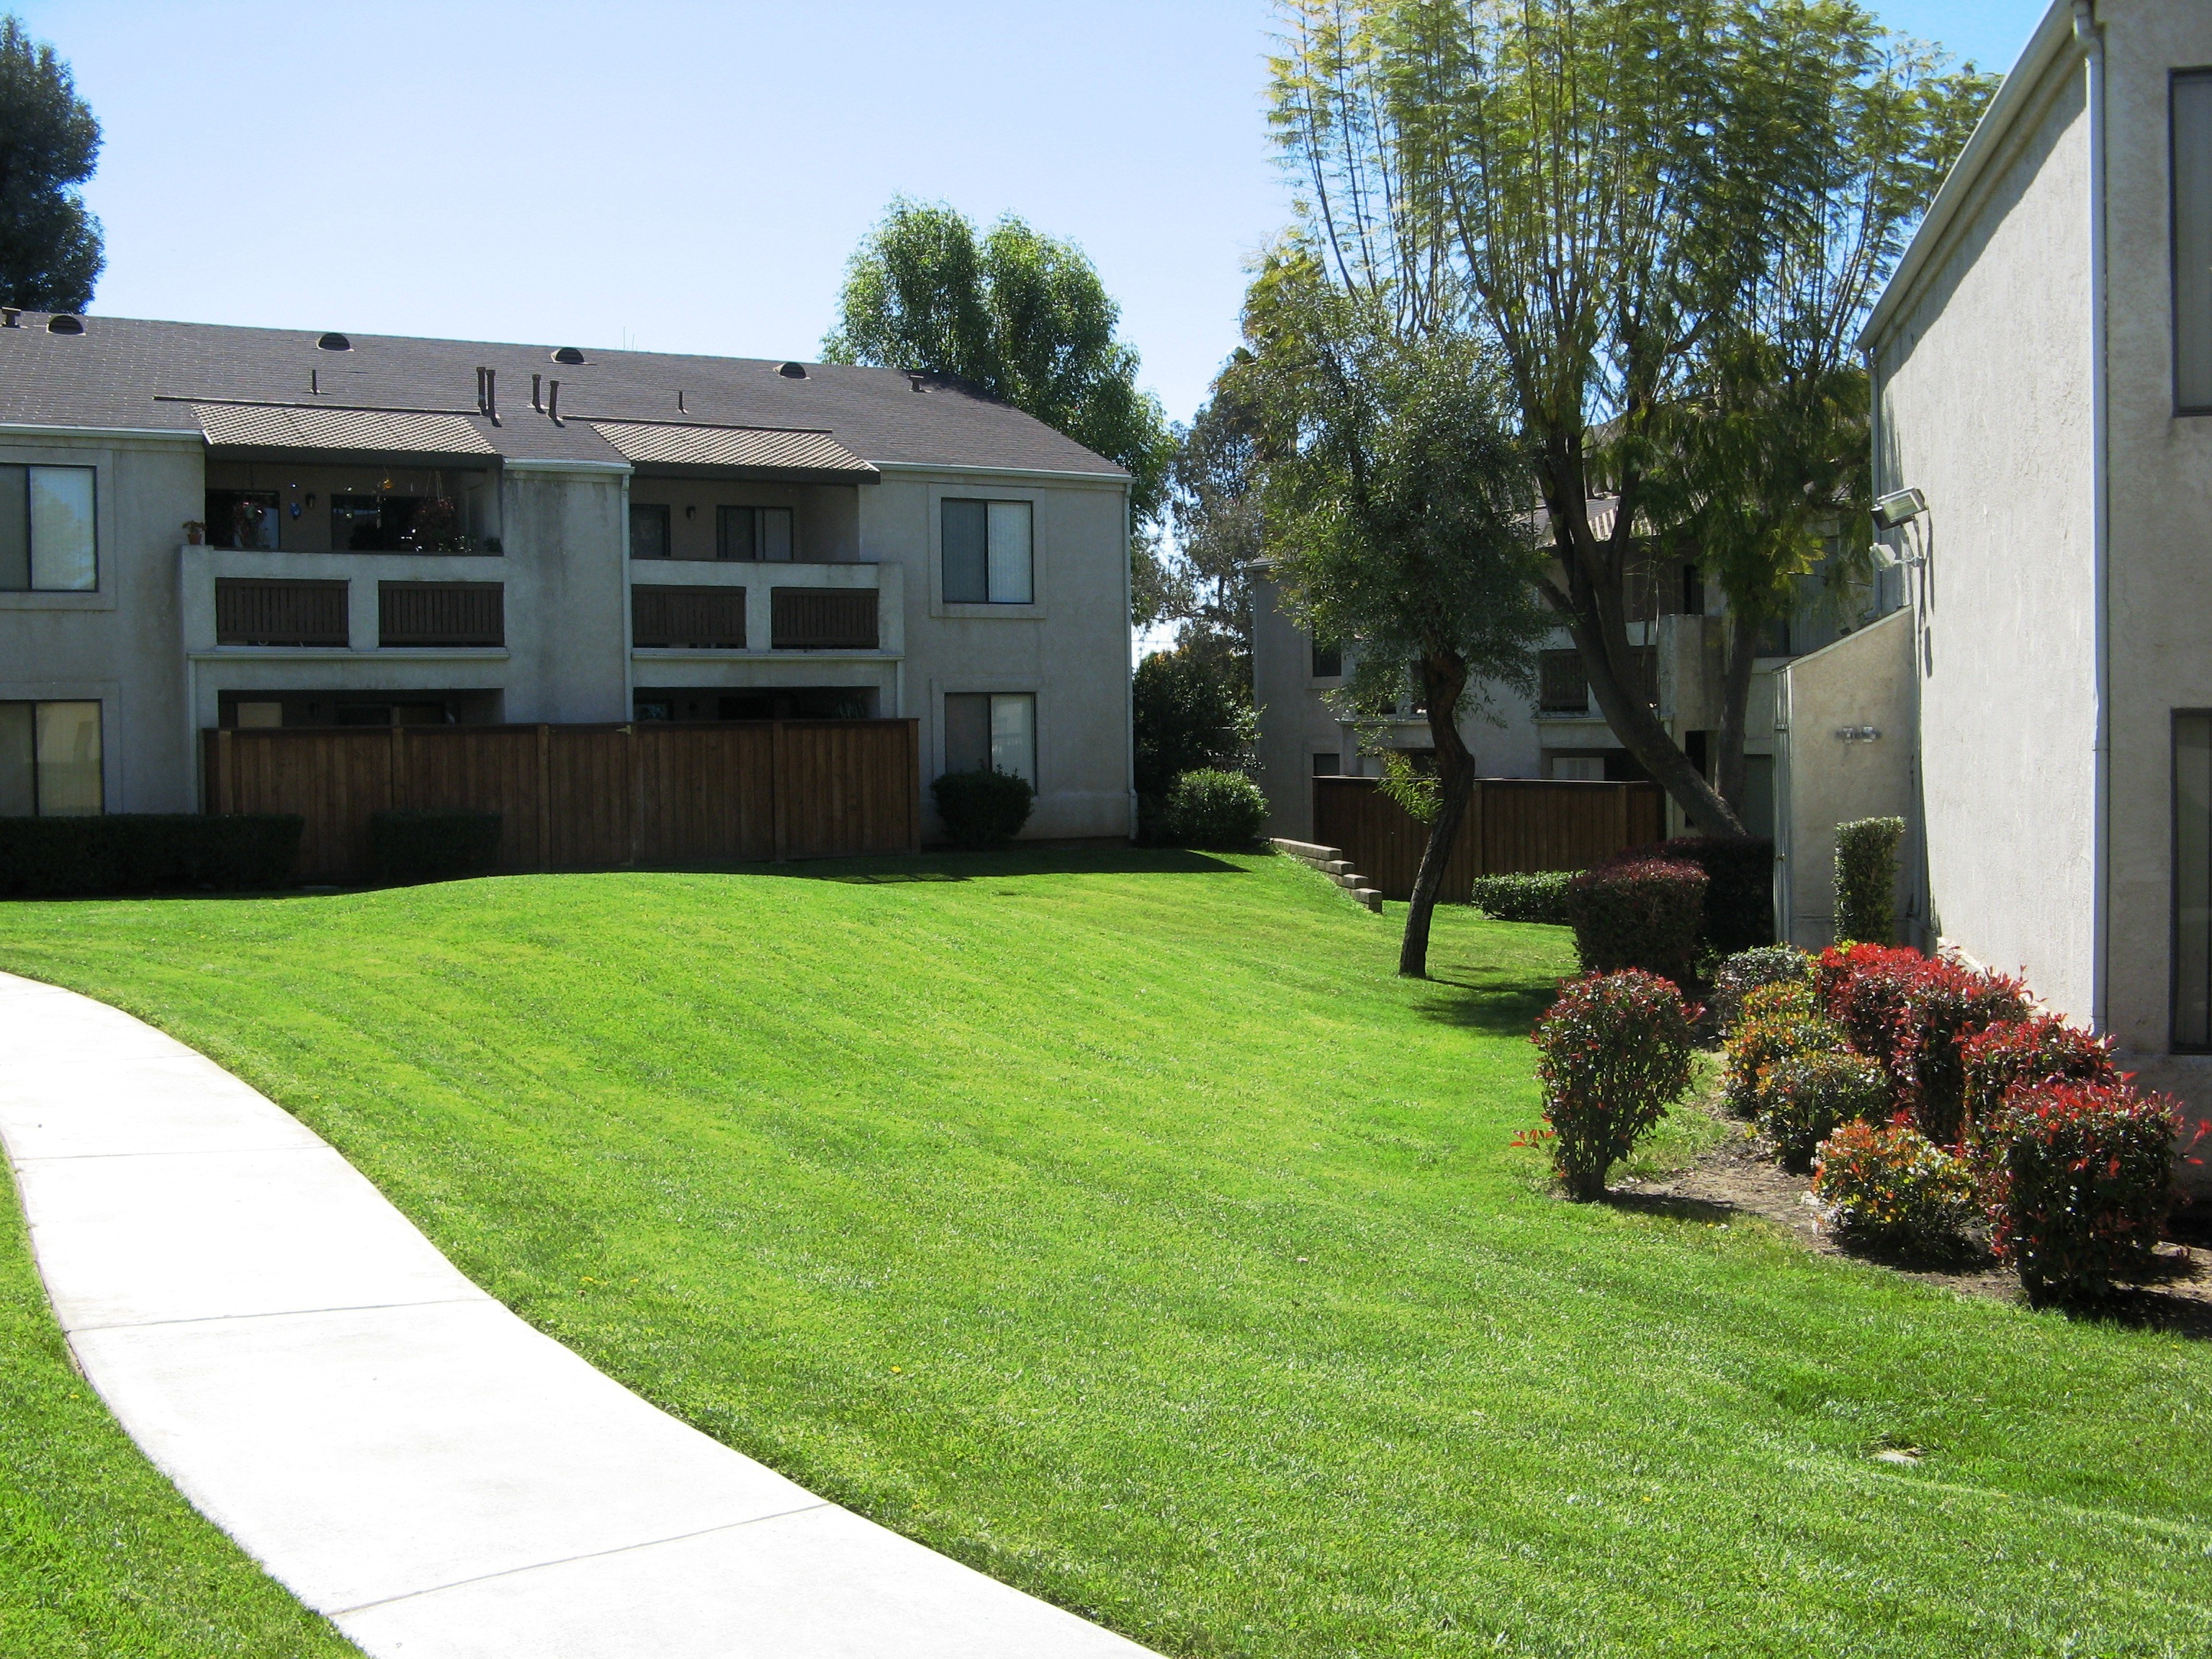 Highland Meadows Apartments image 3